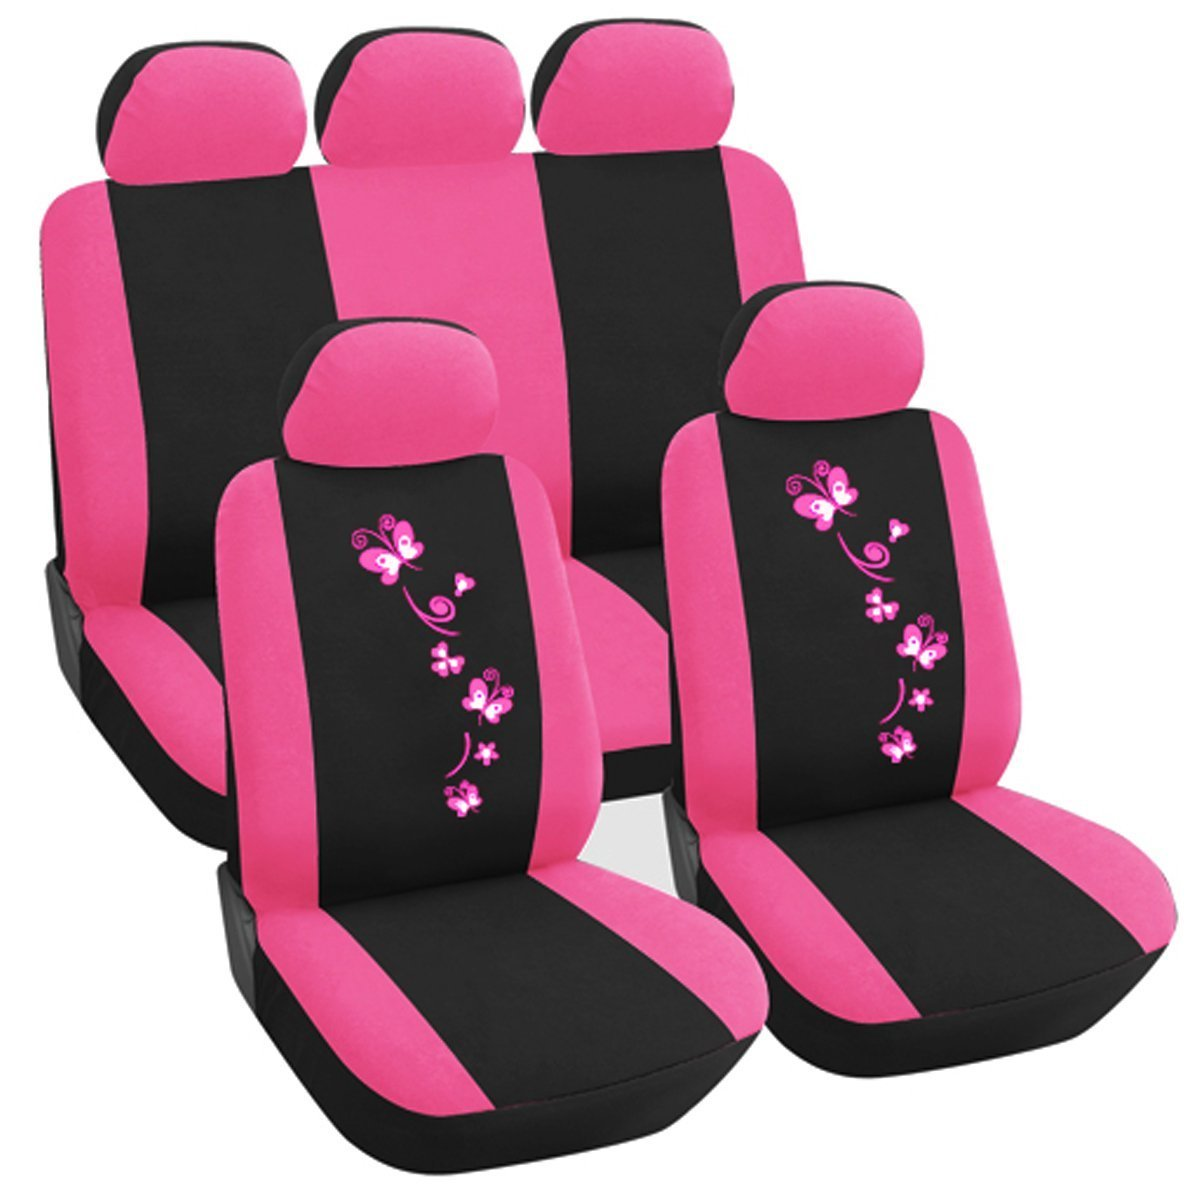 WOLTU AS7252 Universal Black Pink Car Seat Covers 5 Sets Fit Deluxe